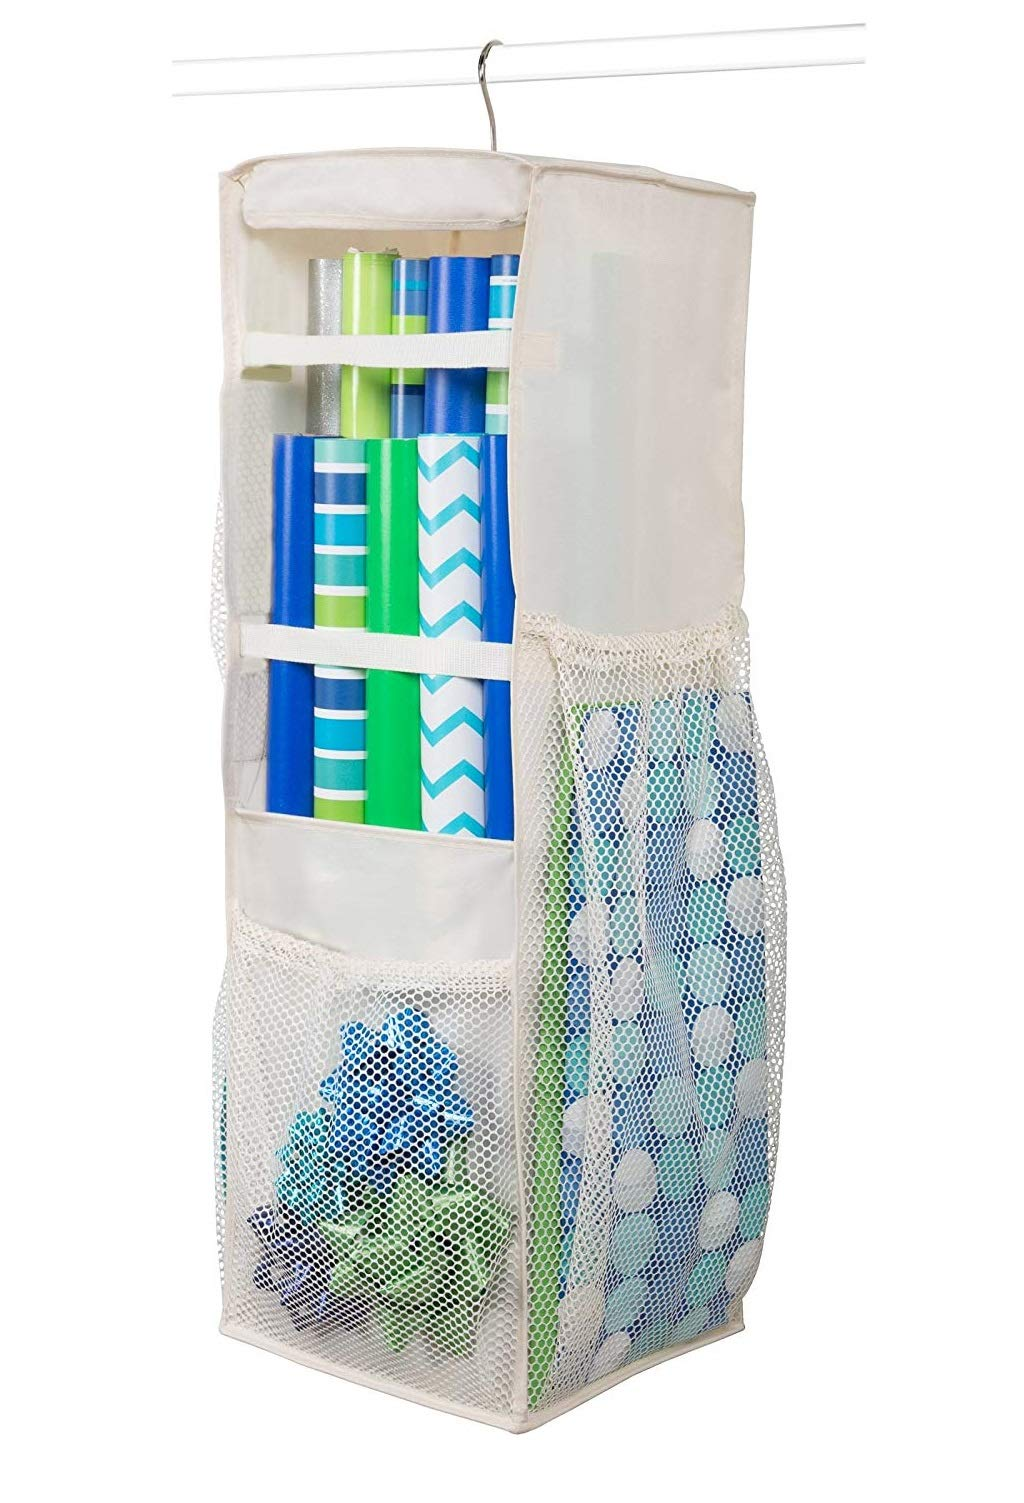 Hanging Wrapping Paper Storage - Holds Up to 20 Rolls, 360 Swivel & Extra Durable Gift Wrap Organizer Bag with Side Bin Pockets for All of Your Birthday, Holiday (Ivory) 32'' x 11'' x 10'' by HOLDN' STORAGE